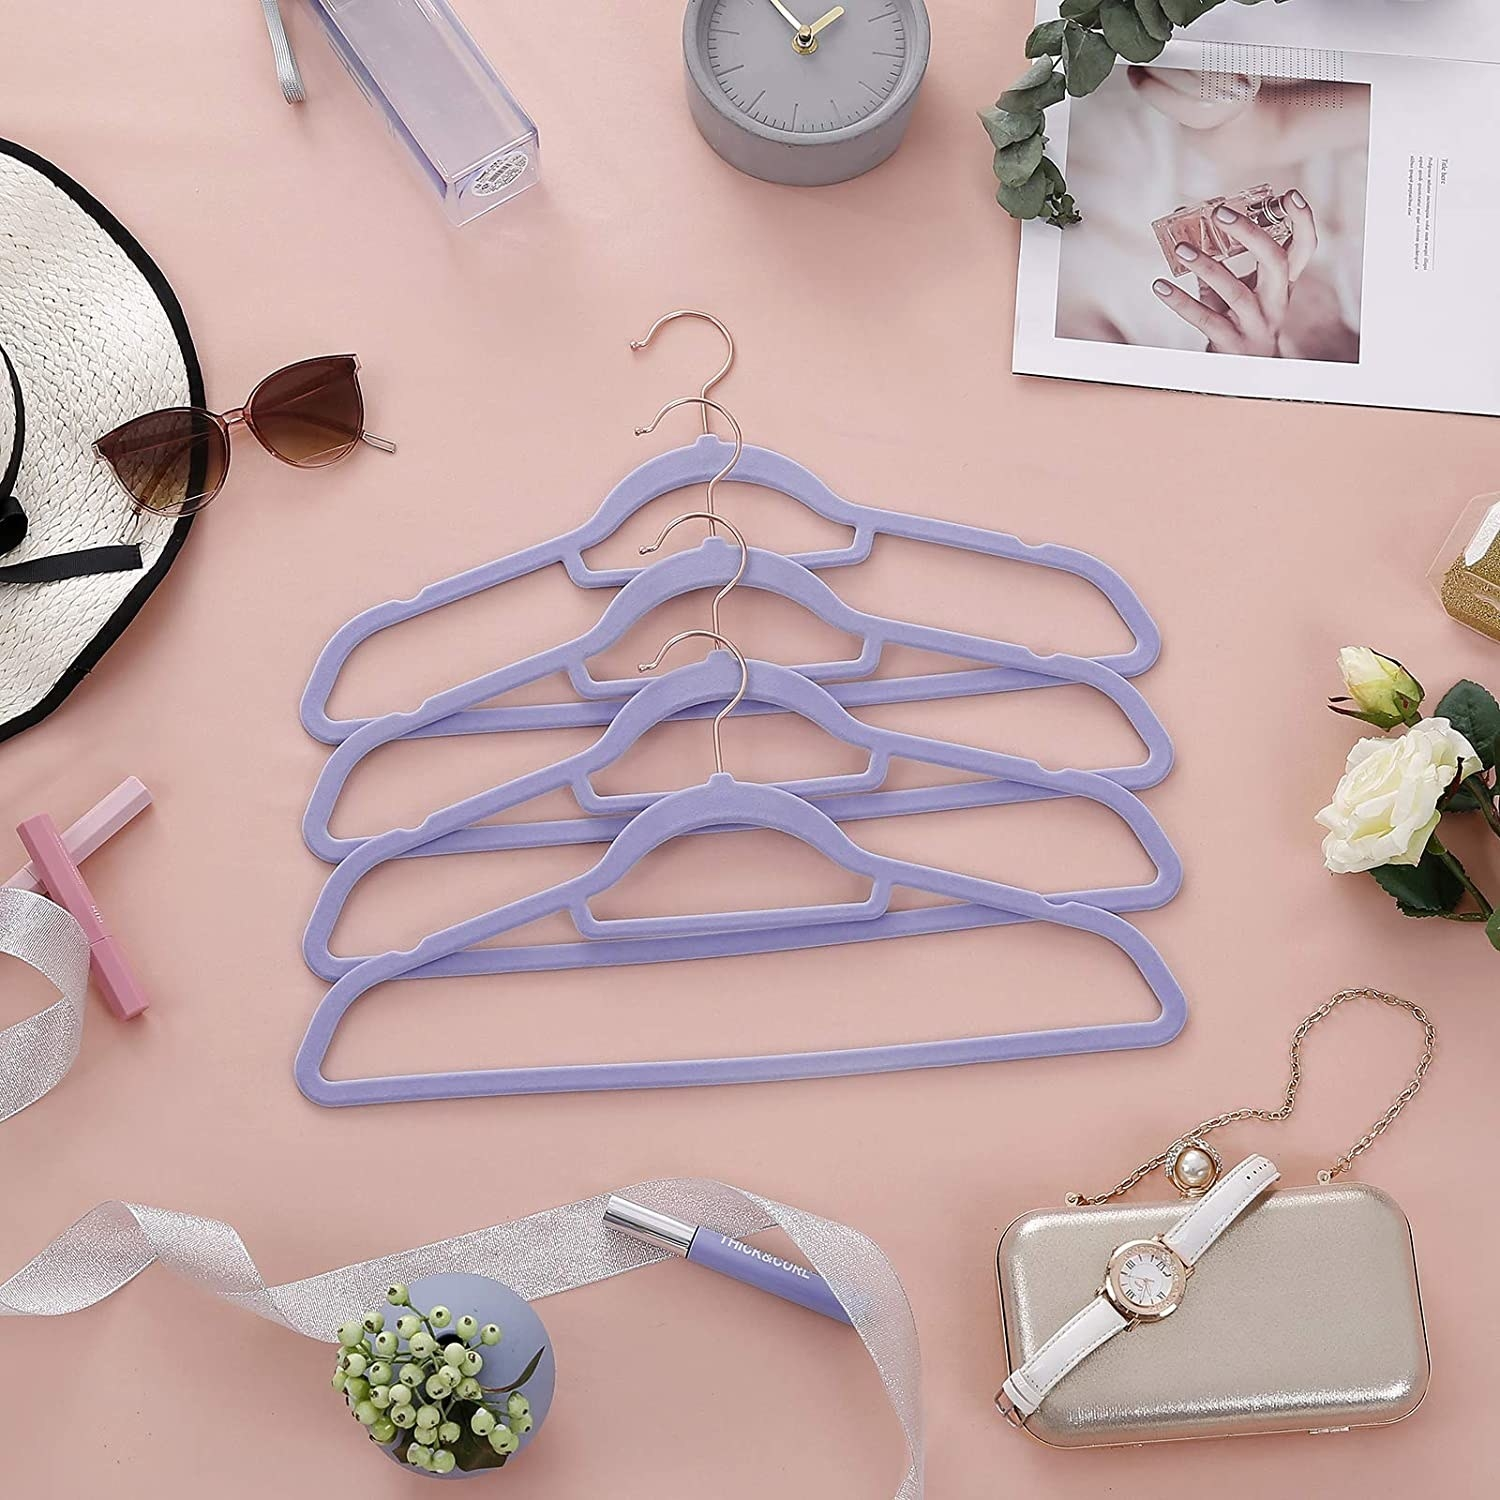 Purple velvet hangers laid out on a table